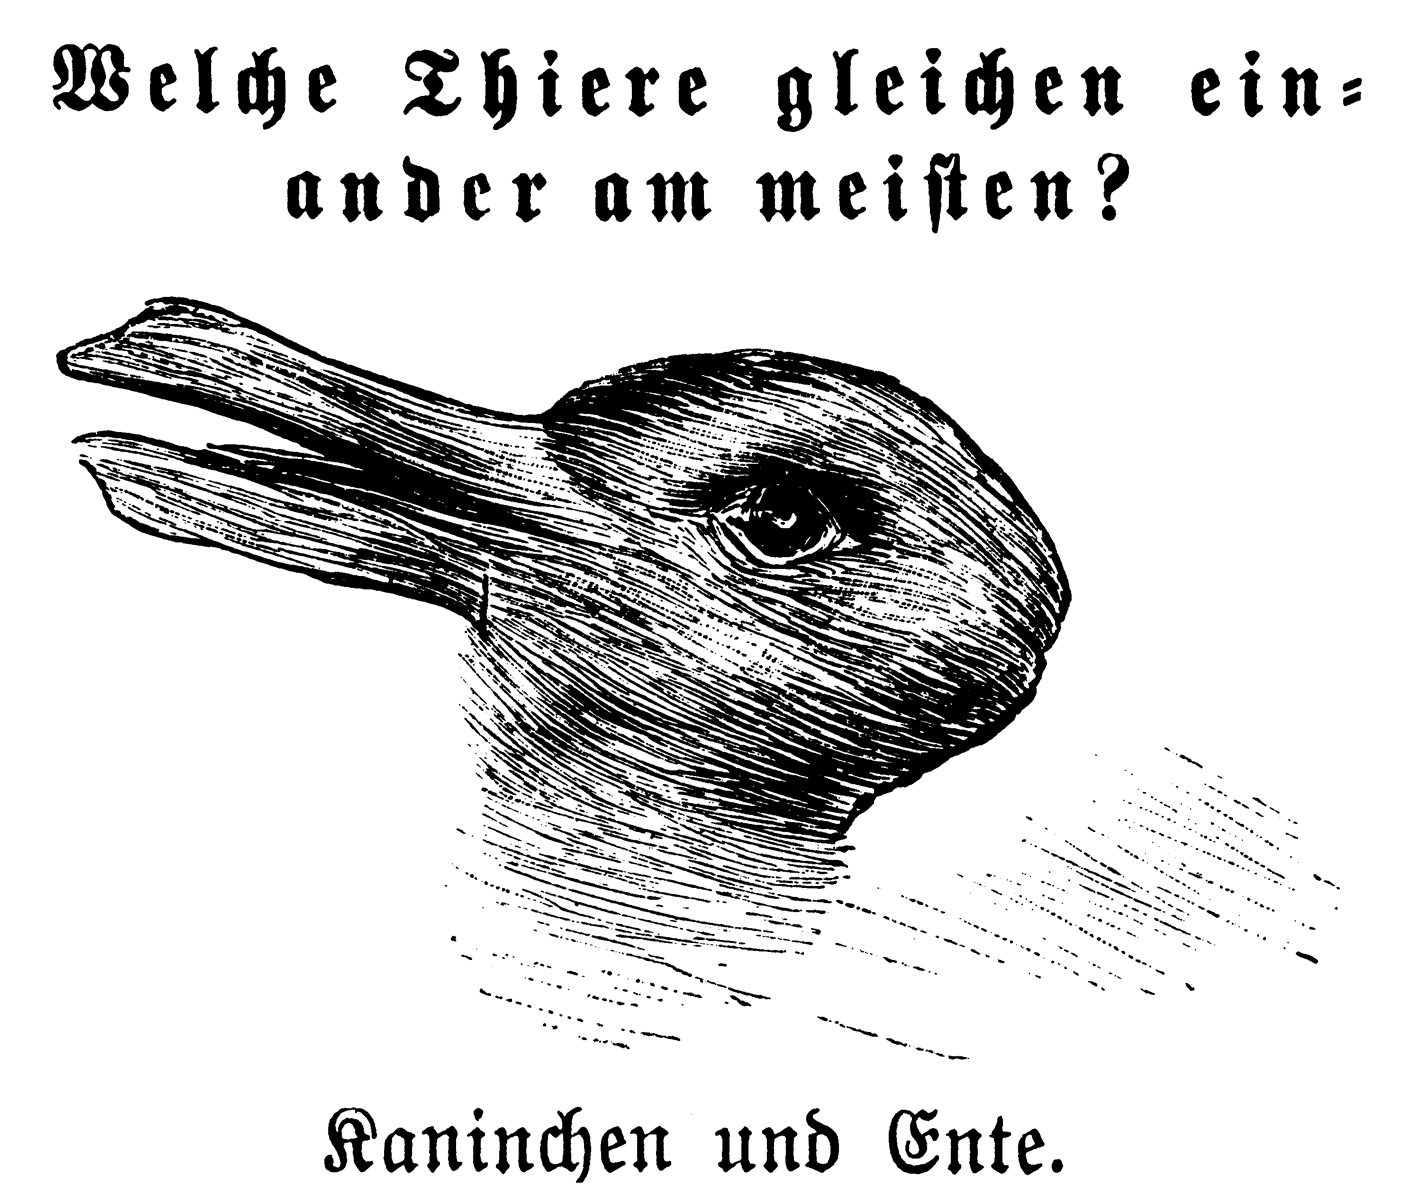 Rabbit-Duck Optical Illusion